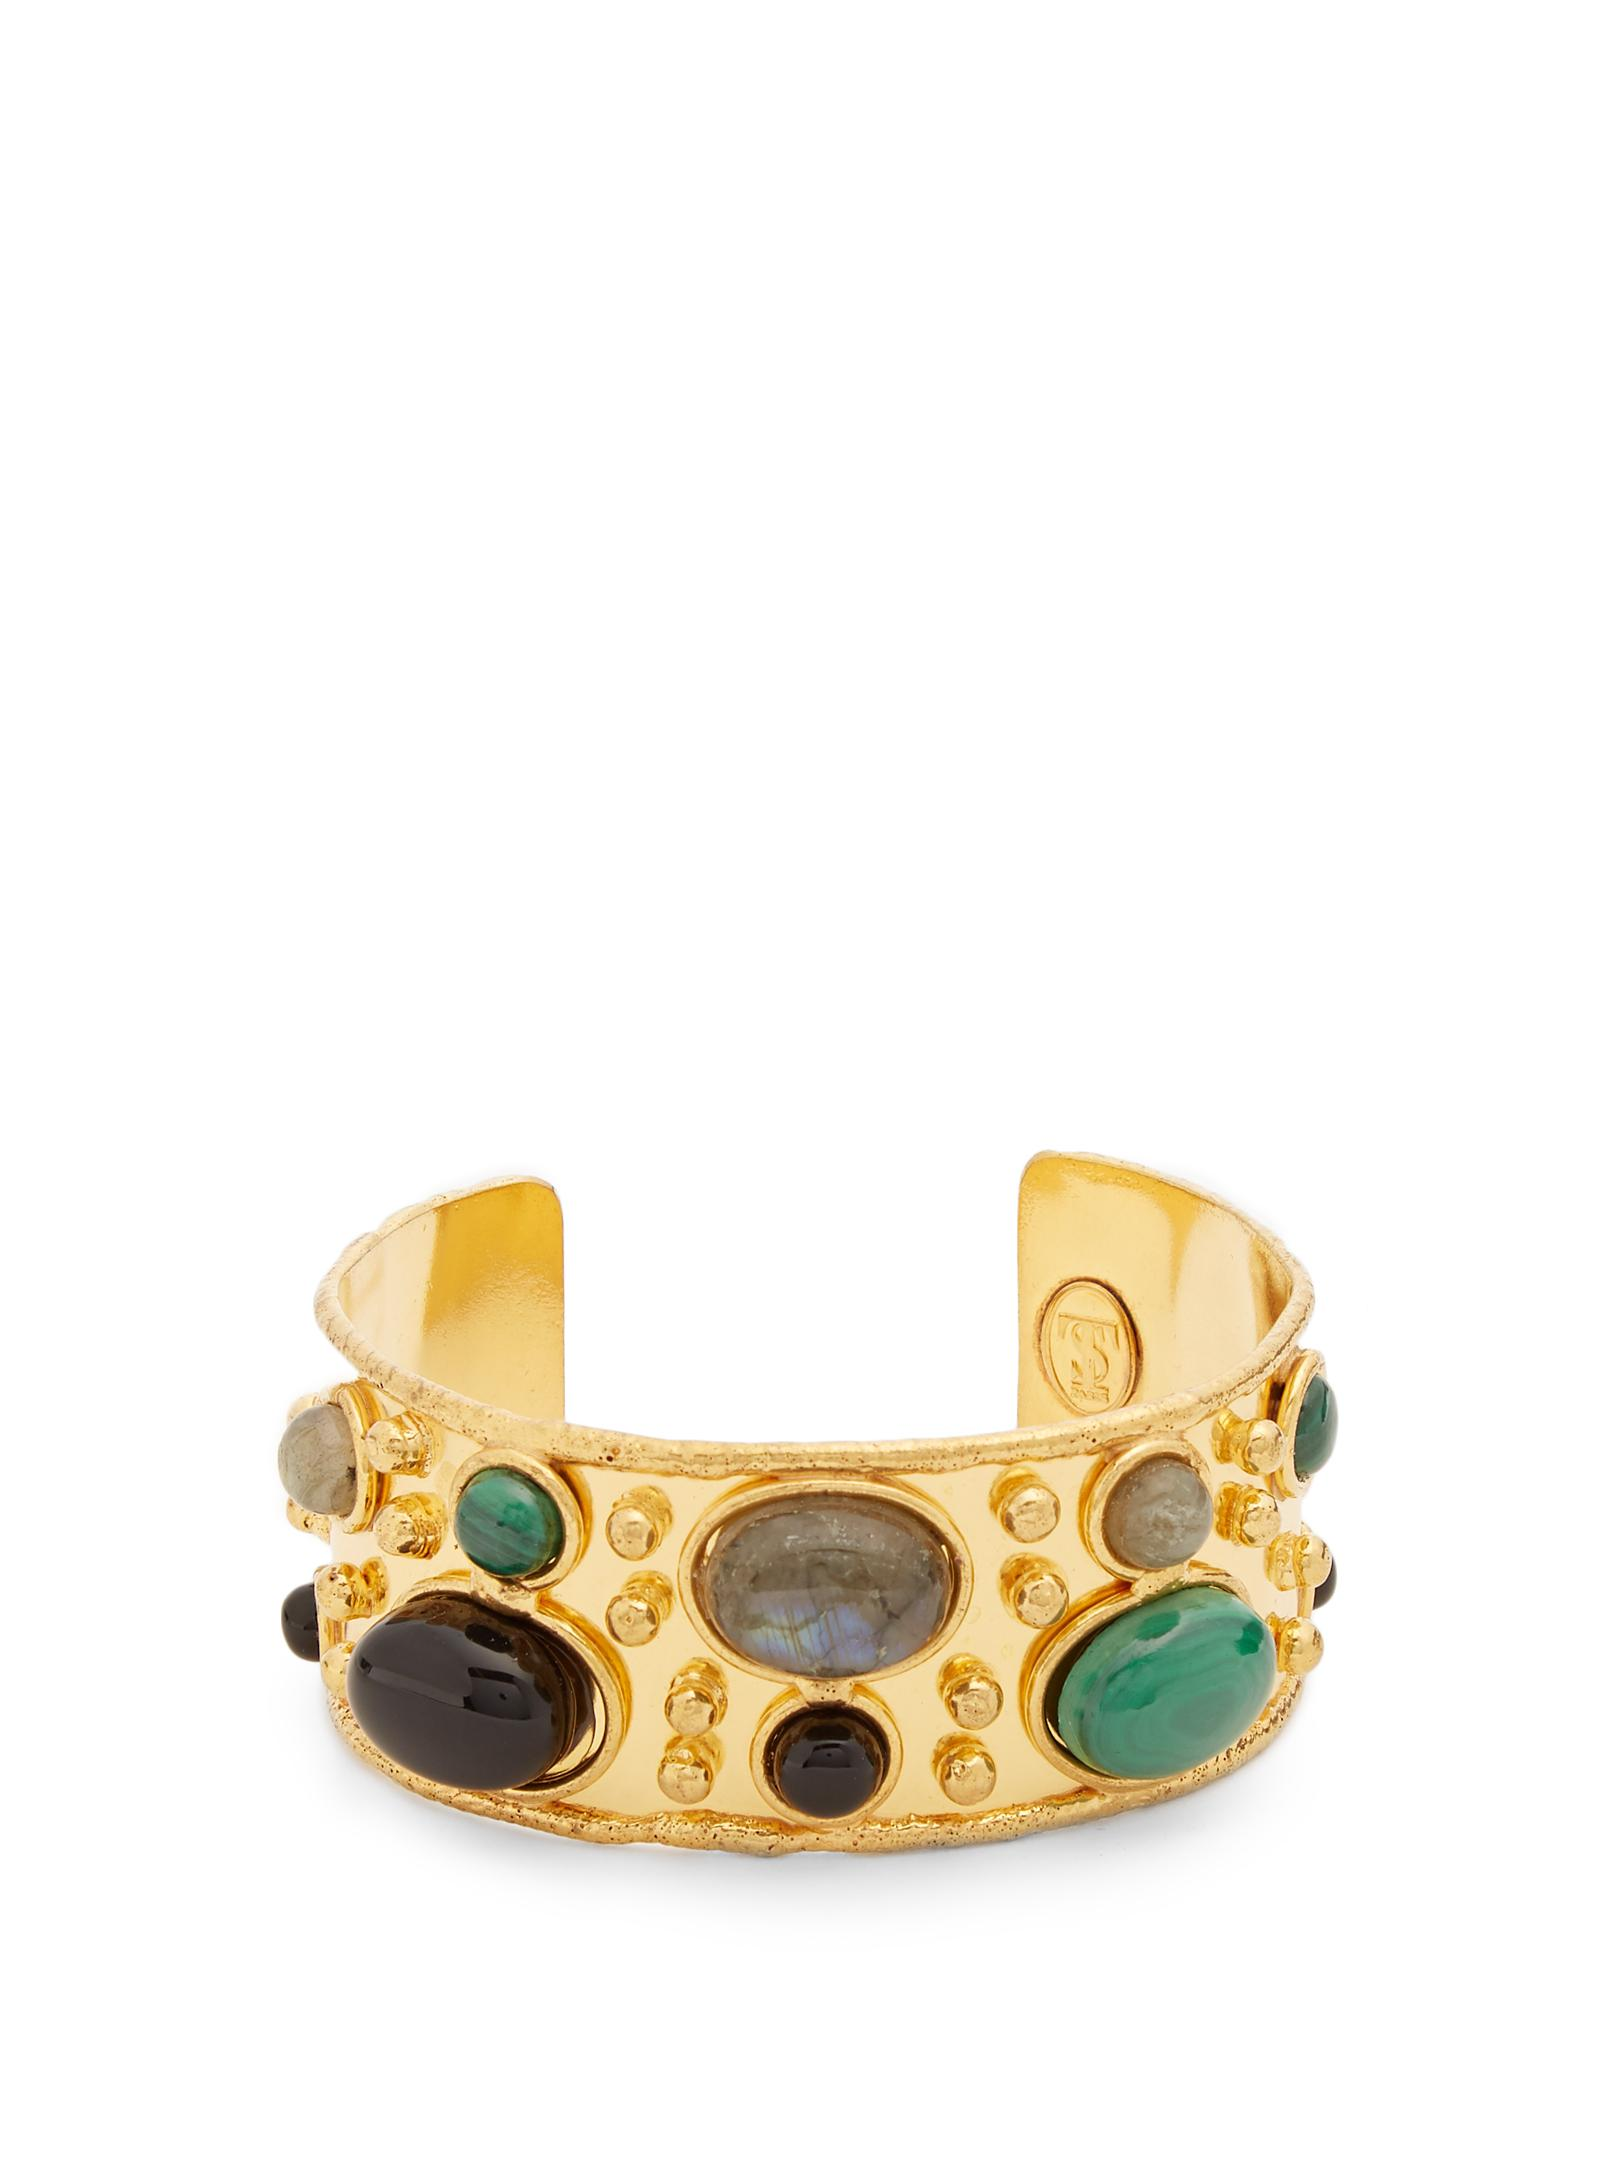 Wonder Byzance Cuff Bracelet in Gold-Plated Brass with Multi-Stones Sylvia Toledano 99TSNRV